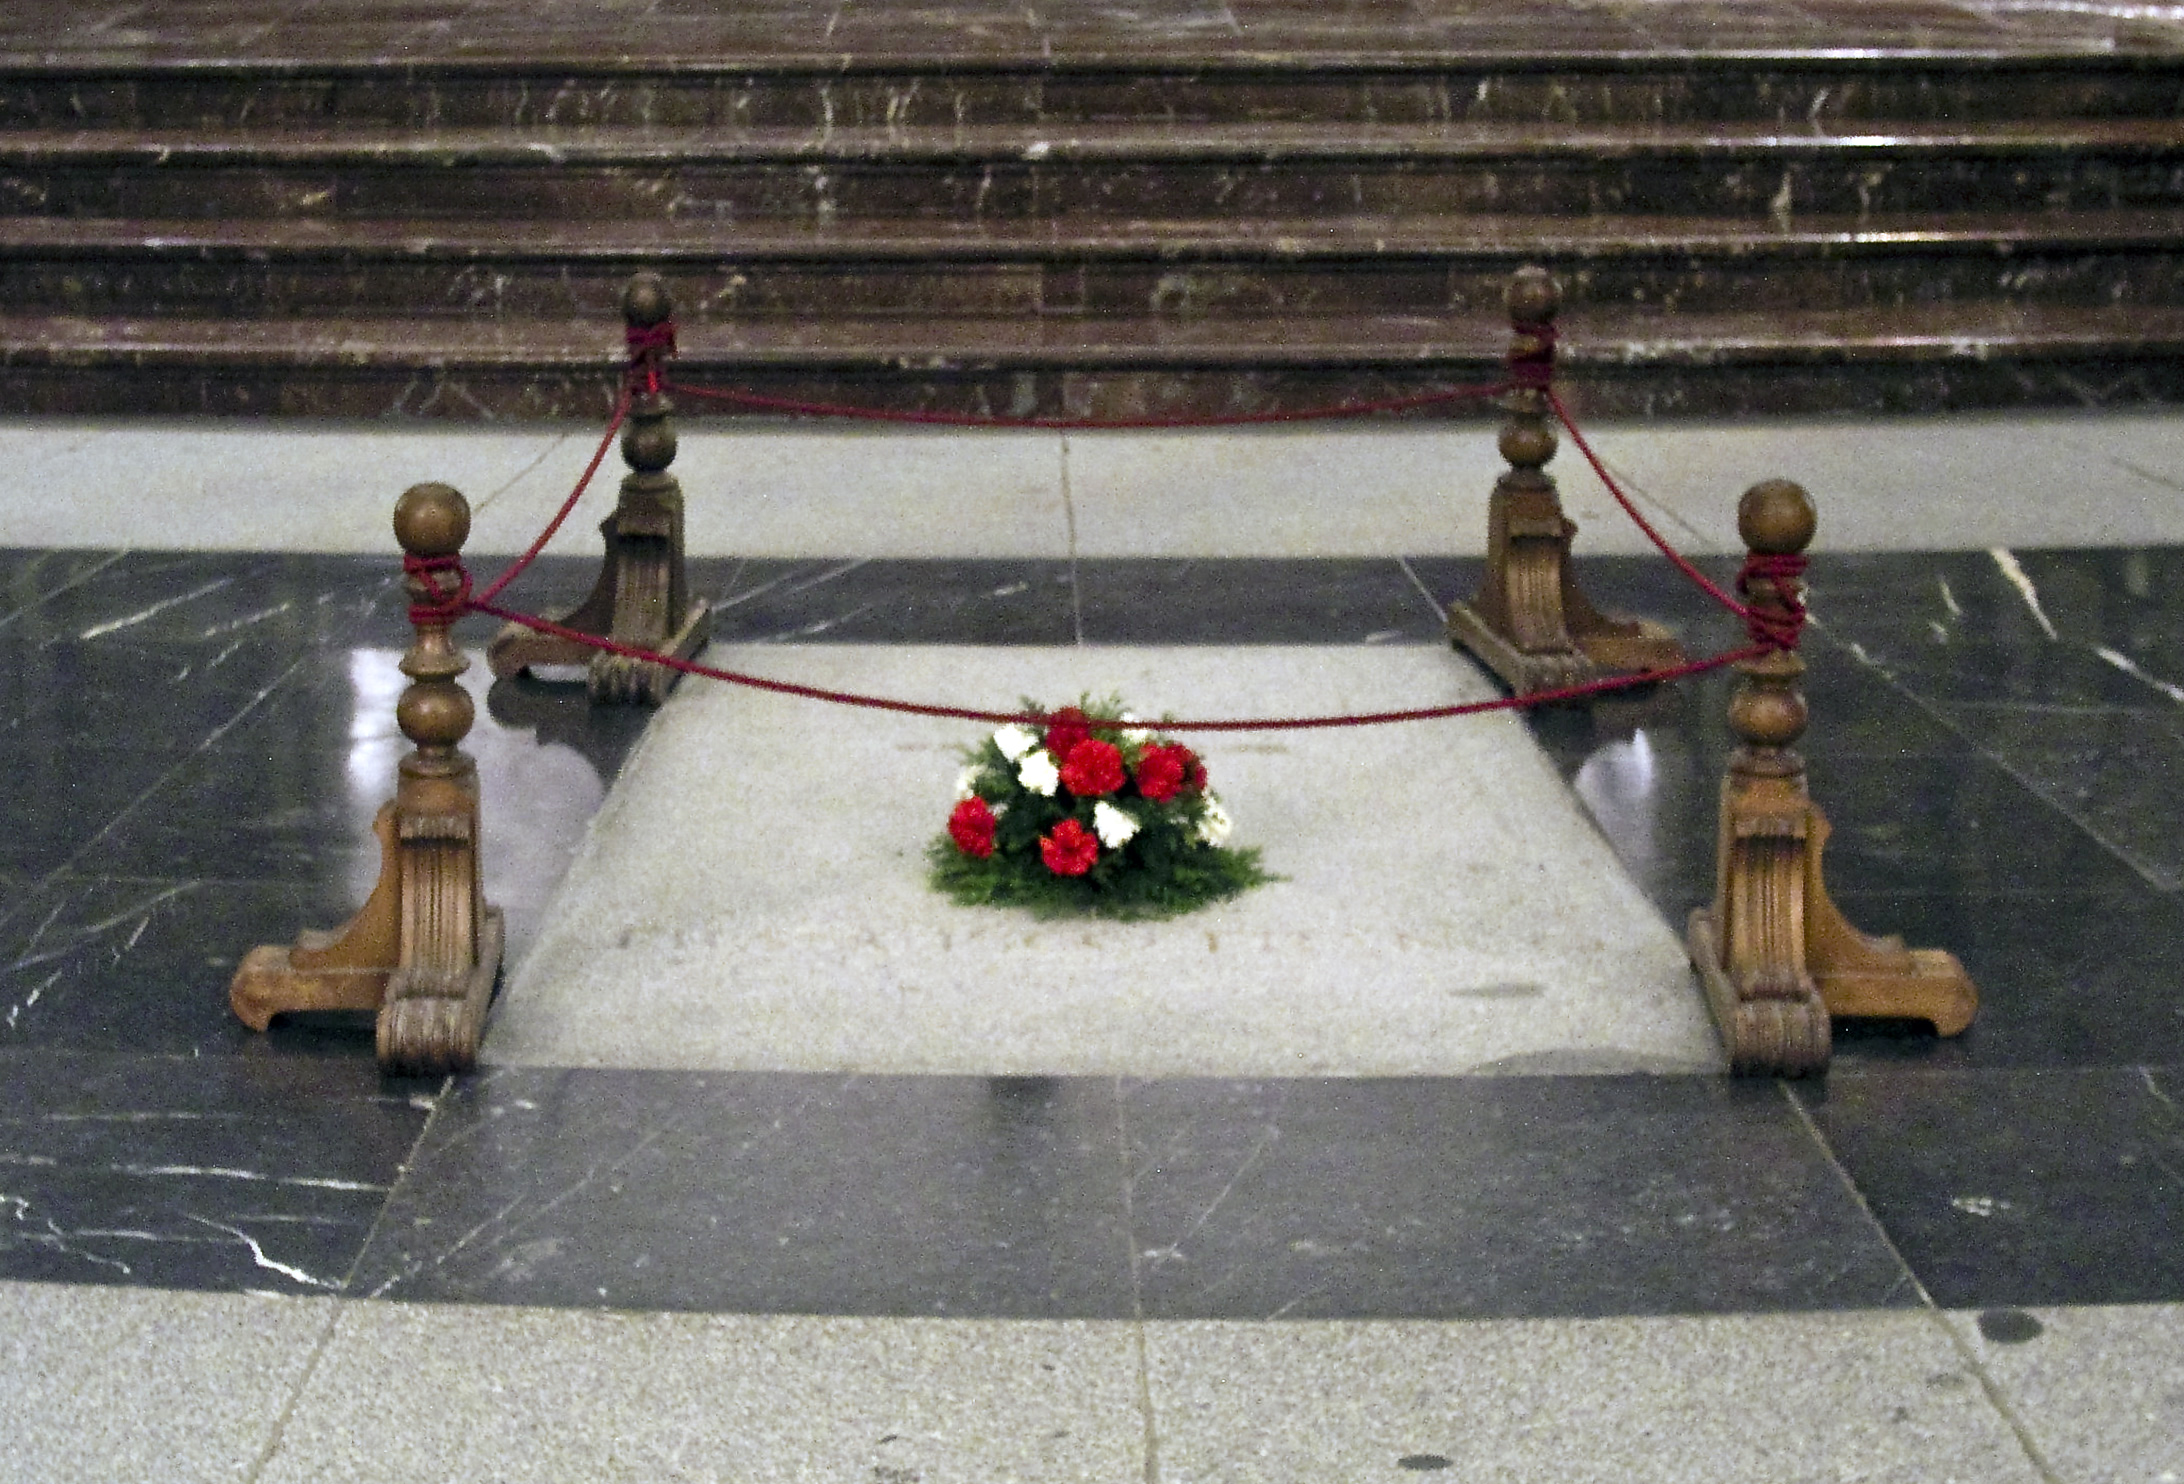 Spain's new government announced it will move Franco's remains from the Valley of the Fallen above to another location. (Wikimedia Commons)